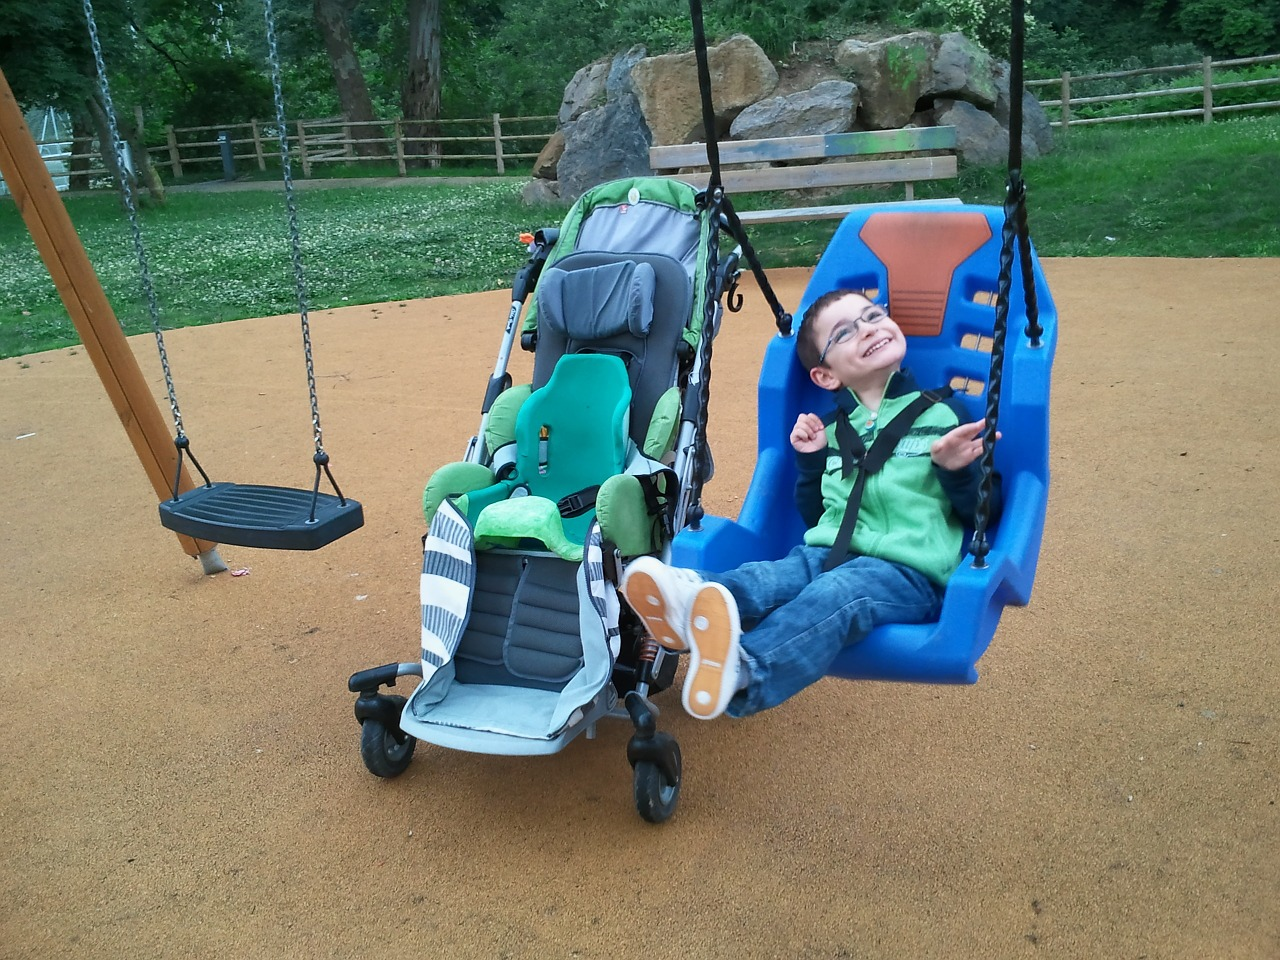 Child,swing,disability,guy,smiles - free image from needpix.com